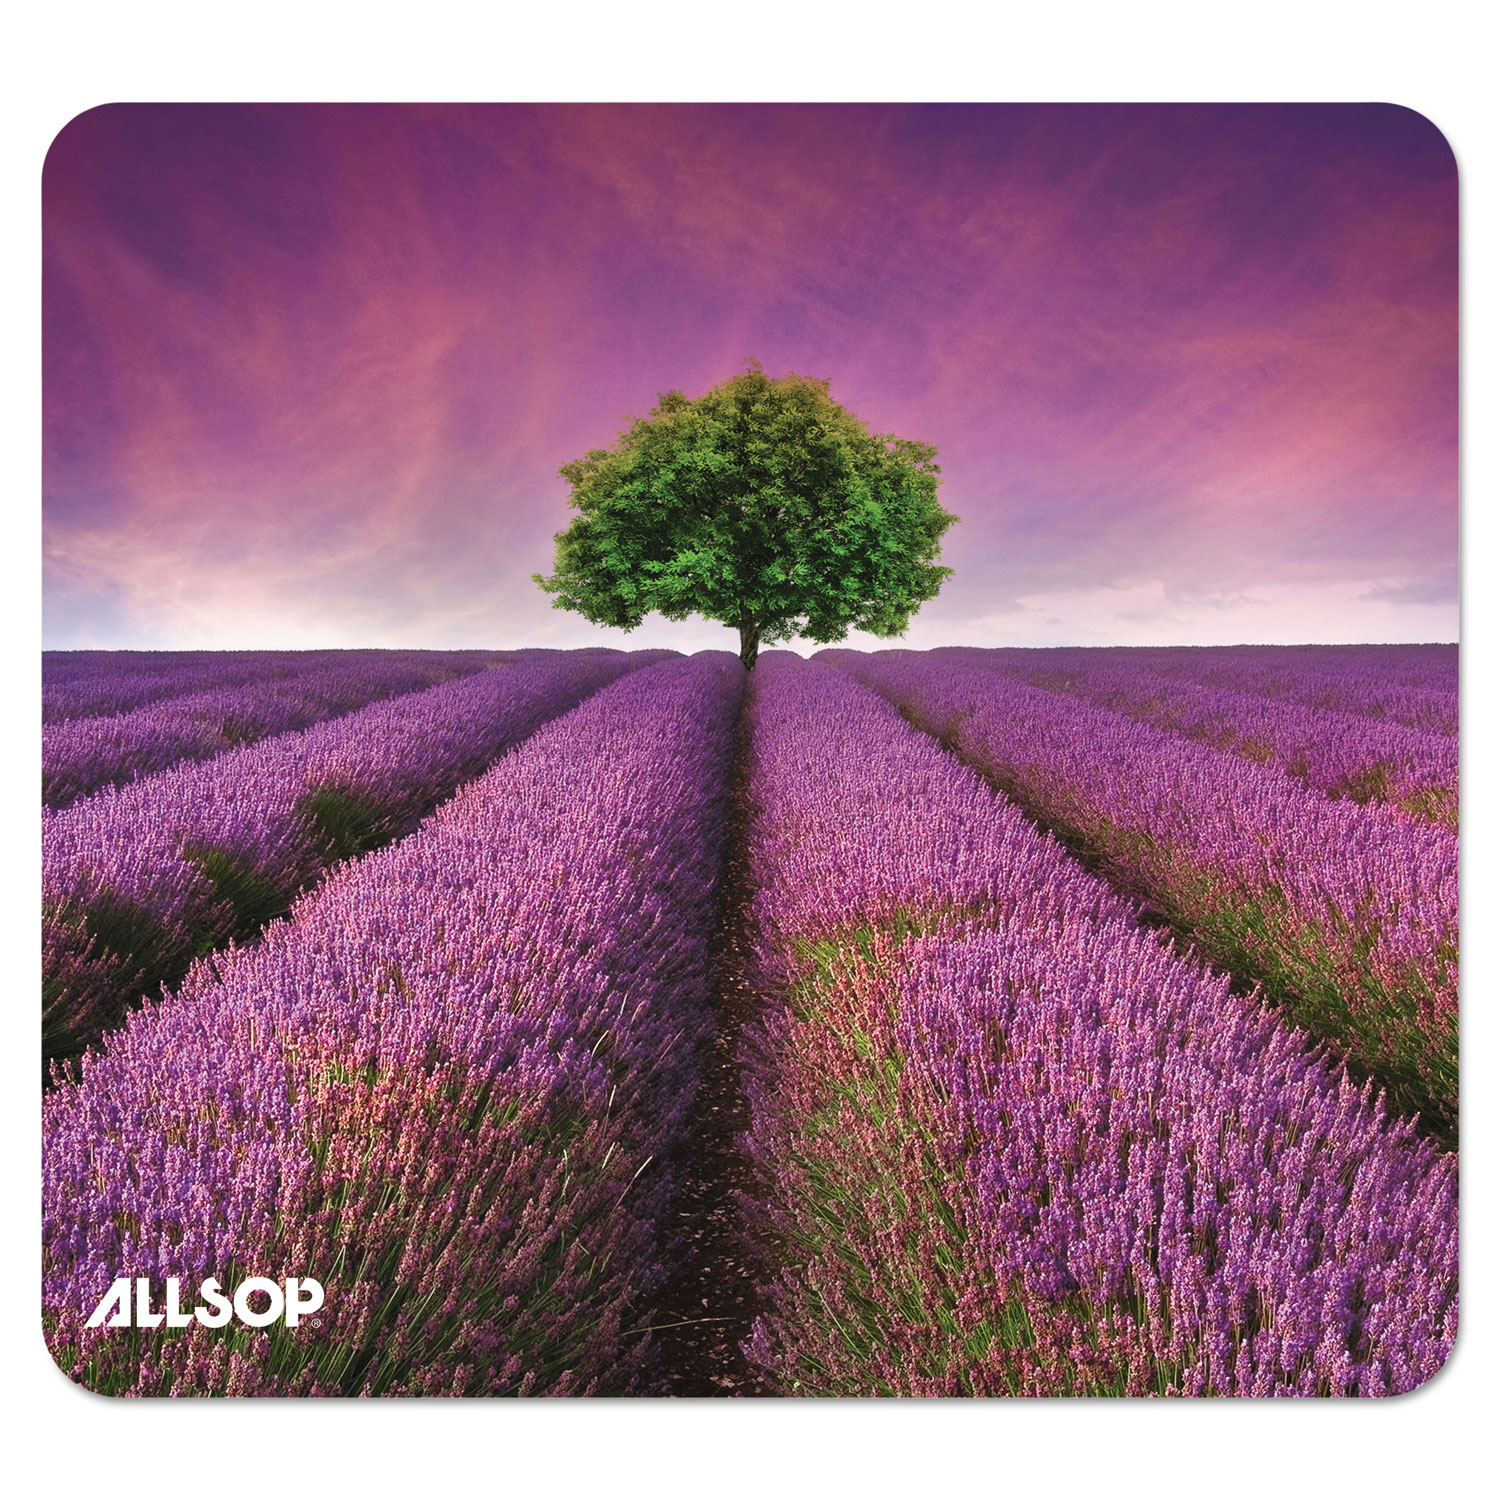 Naturesmart Mouse Pad, Lavender Field Design, 8 1/2 x 8 x 1/10